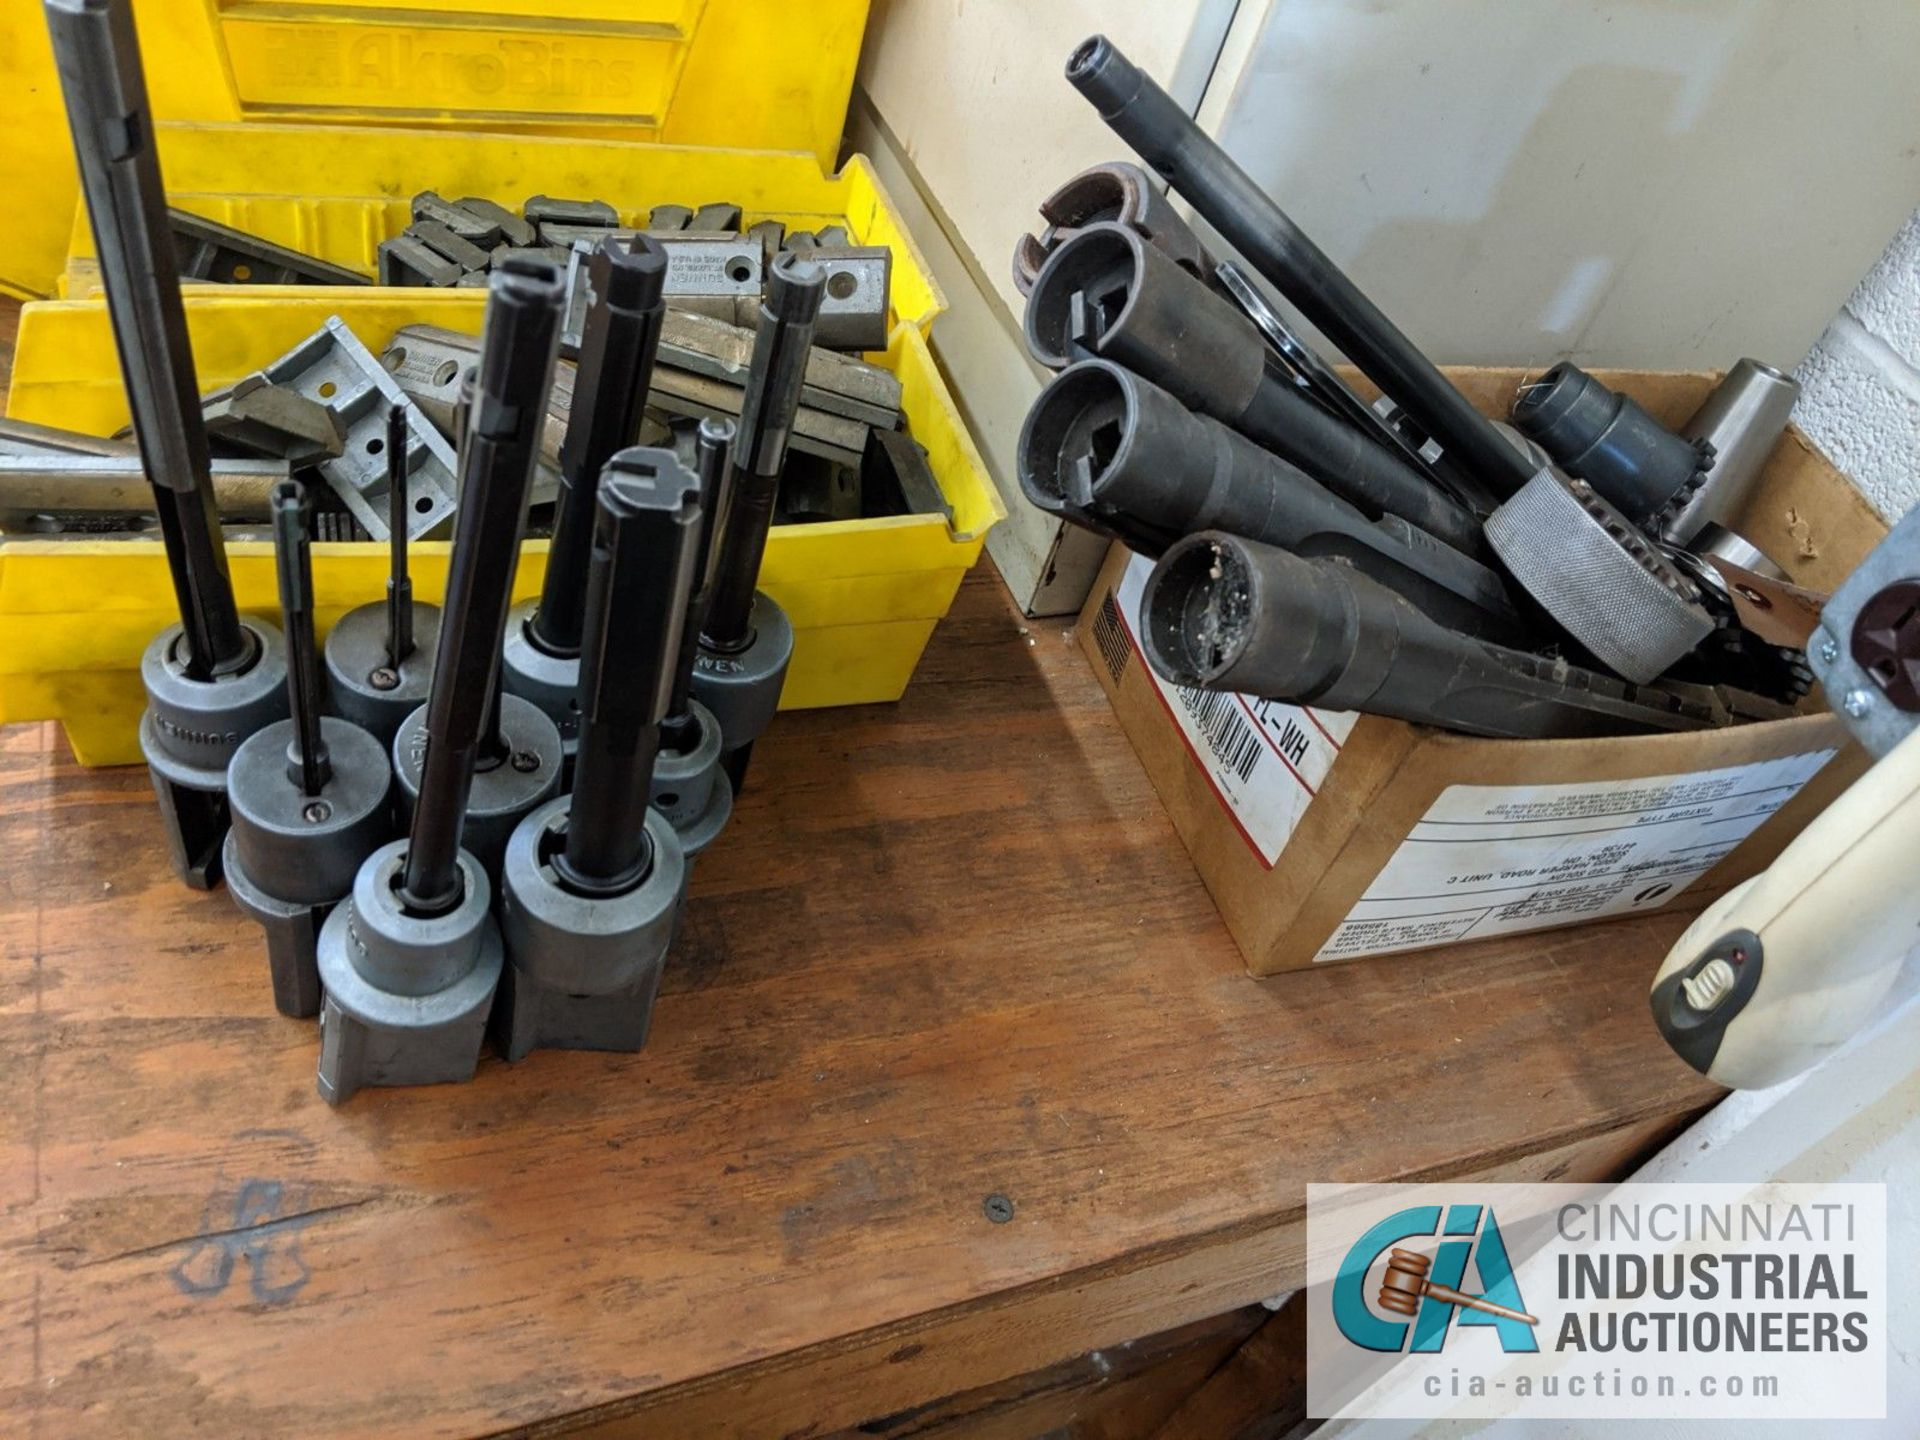 (LOT) ASSORTED HONE TOOLING IN TOTES AND CABINET WIHT BENCH - Image 3 of 4